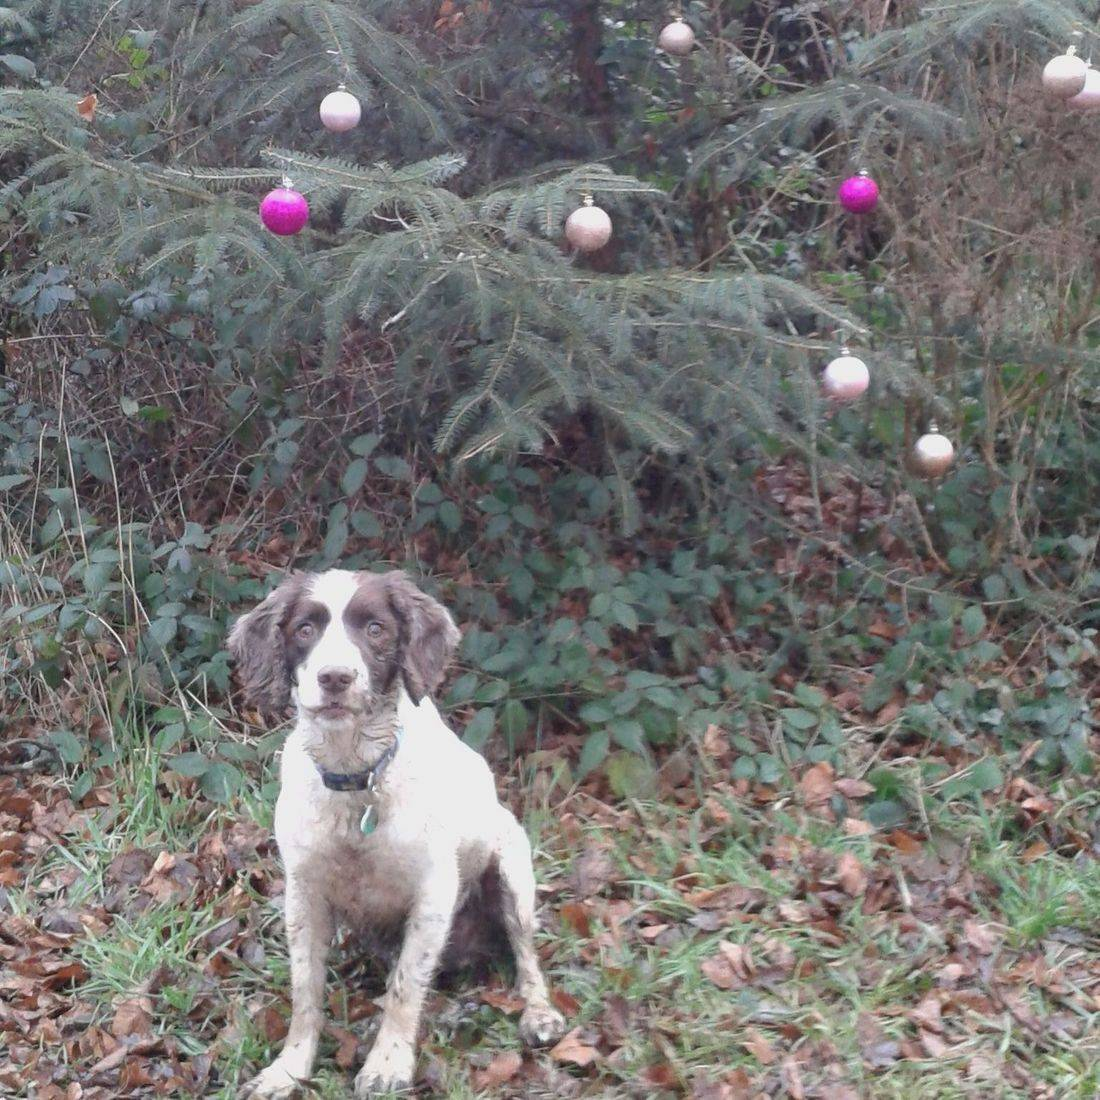 Springer Spaniel underneath a Christmas Tree in the woods